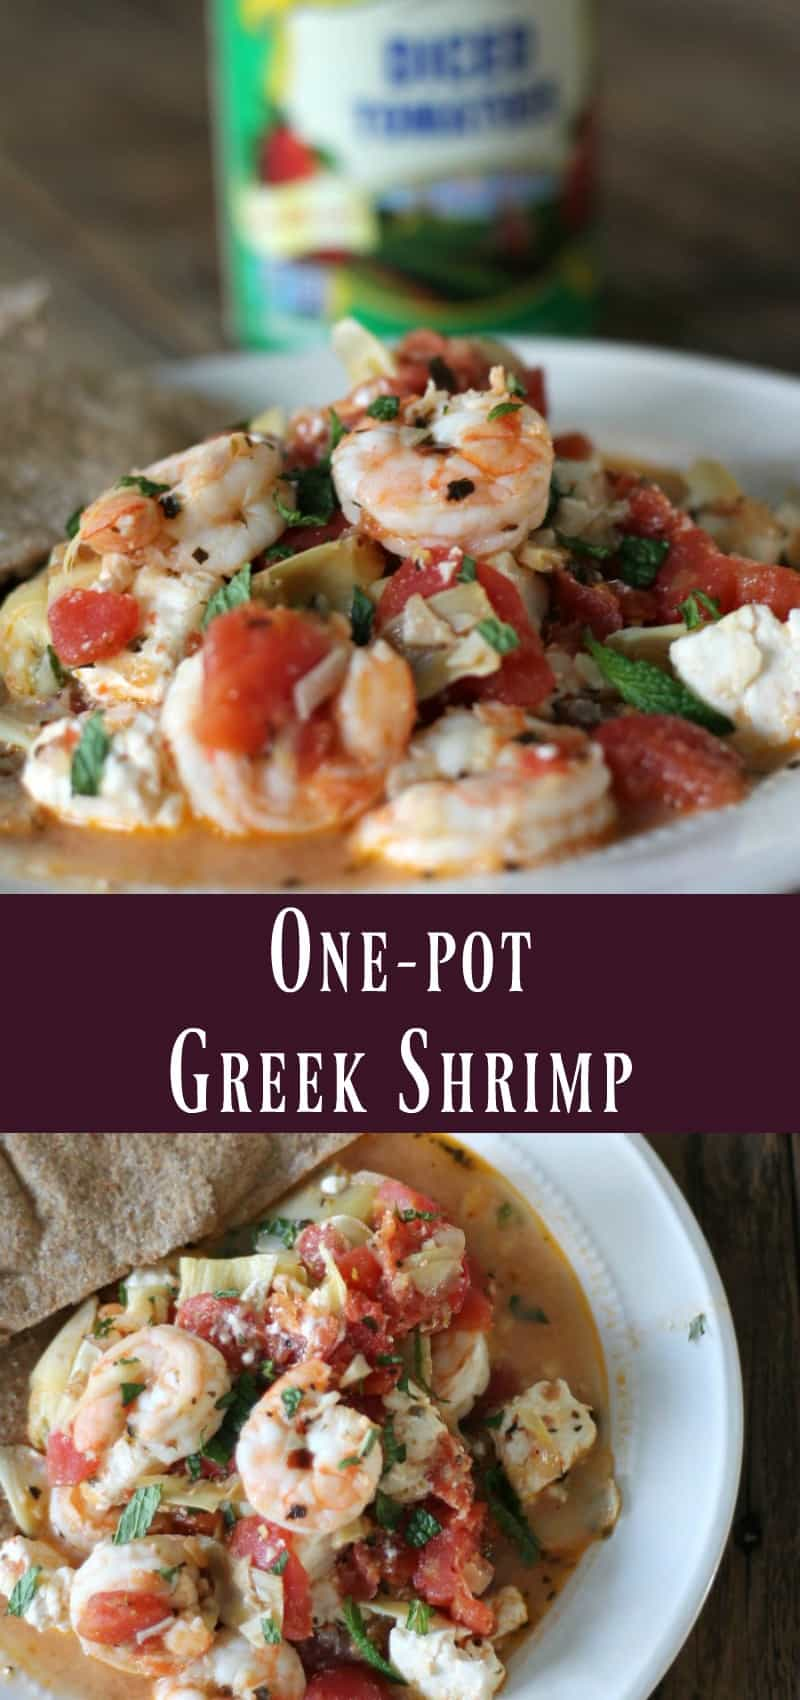 Healthy One-pot Greek Shrimp pantry meal recipe